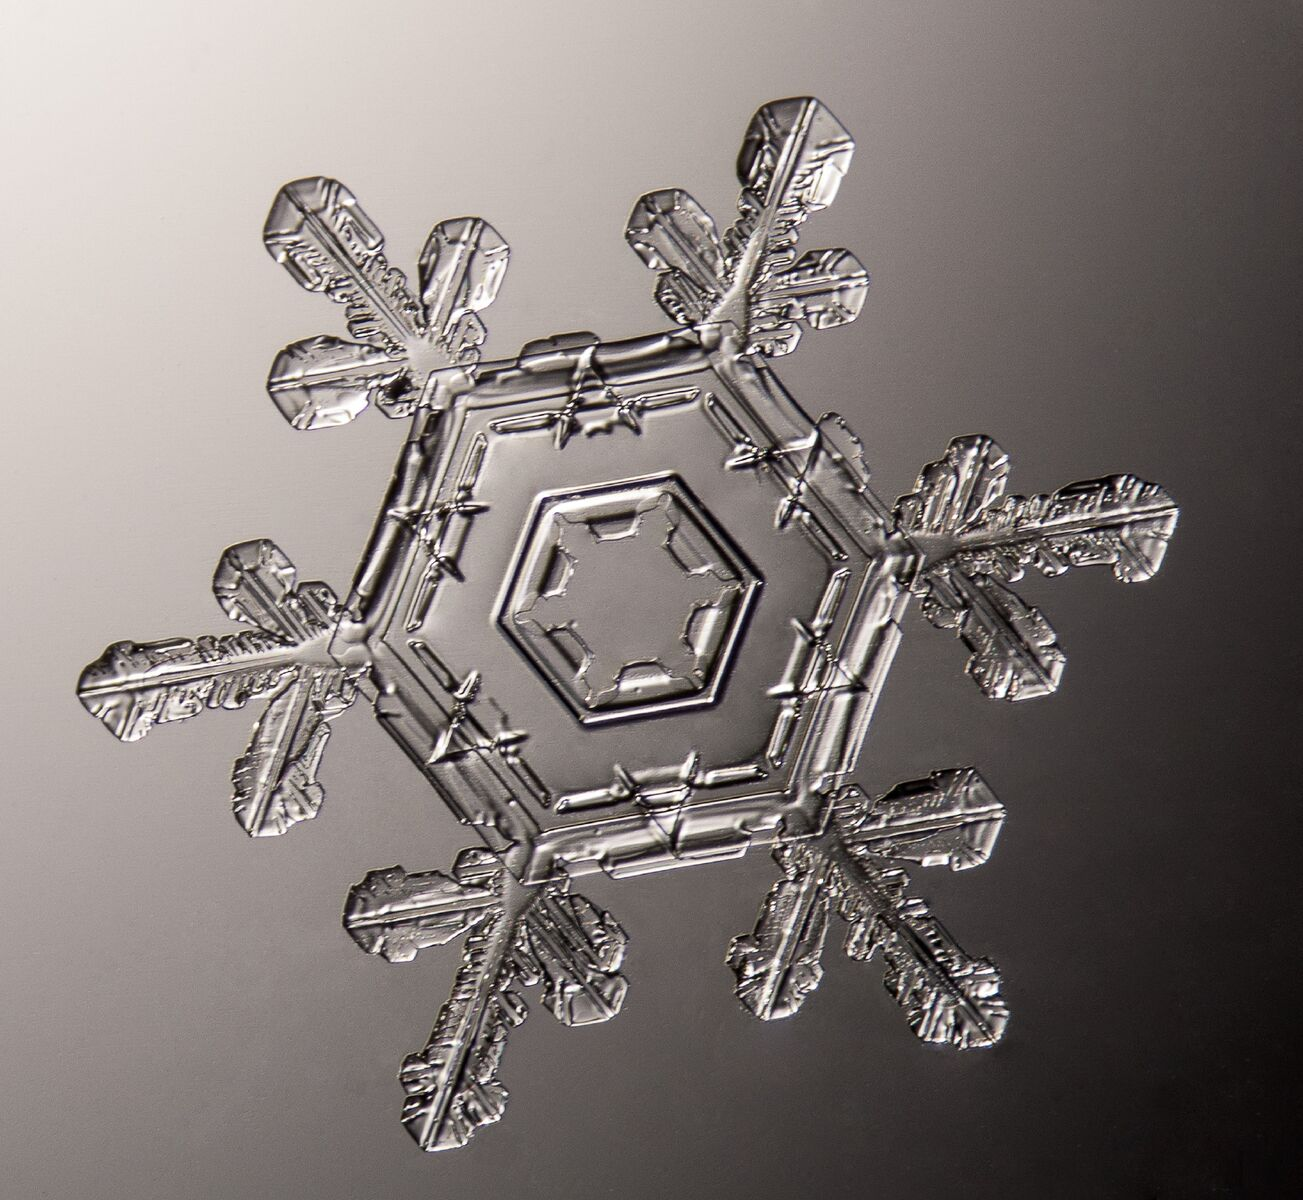 This picture features a stellar plate crystal of a snowflake photographed March 13, 2013. The crystal was approximately 2mm. All snowflakes are different in appearance for many reasons. This crystal has not fully developed the dendritic wings that are often expected in snowflakes.© Michael Peres